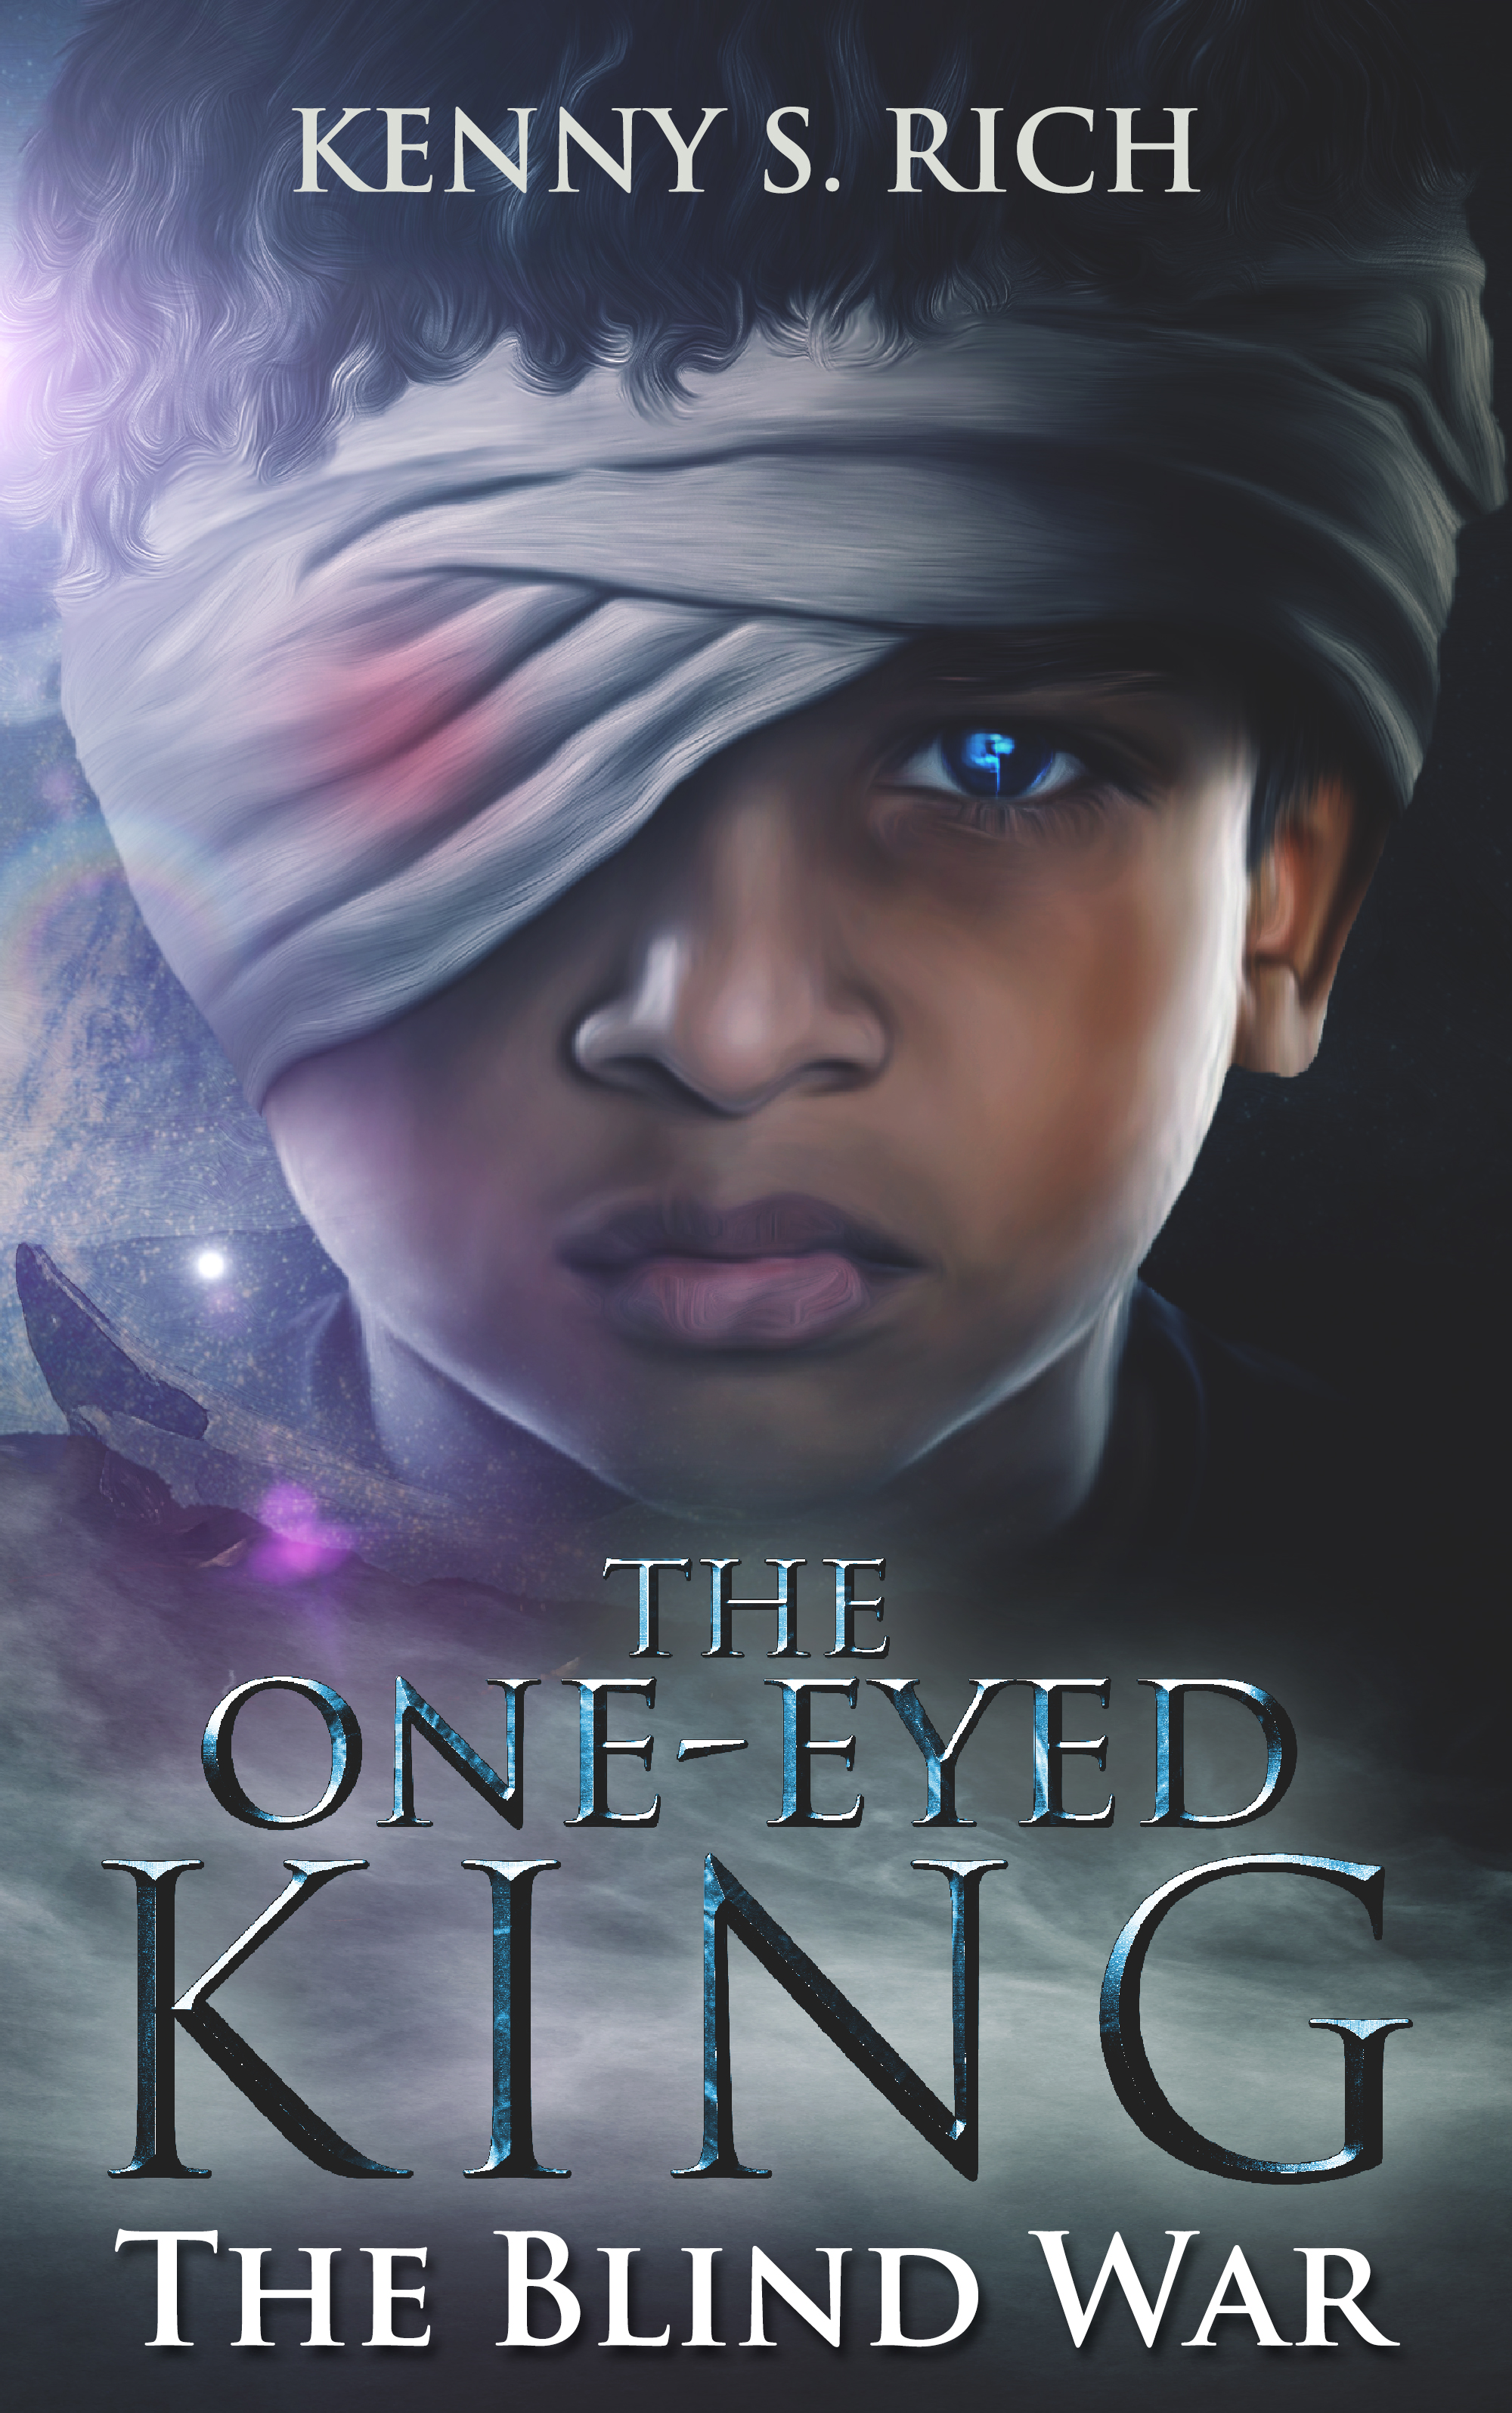 Book 1_The One-Eyed King_ebook (1).jpg